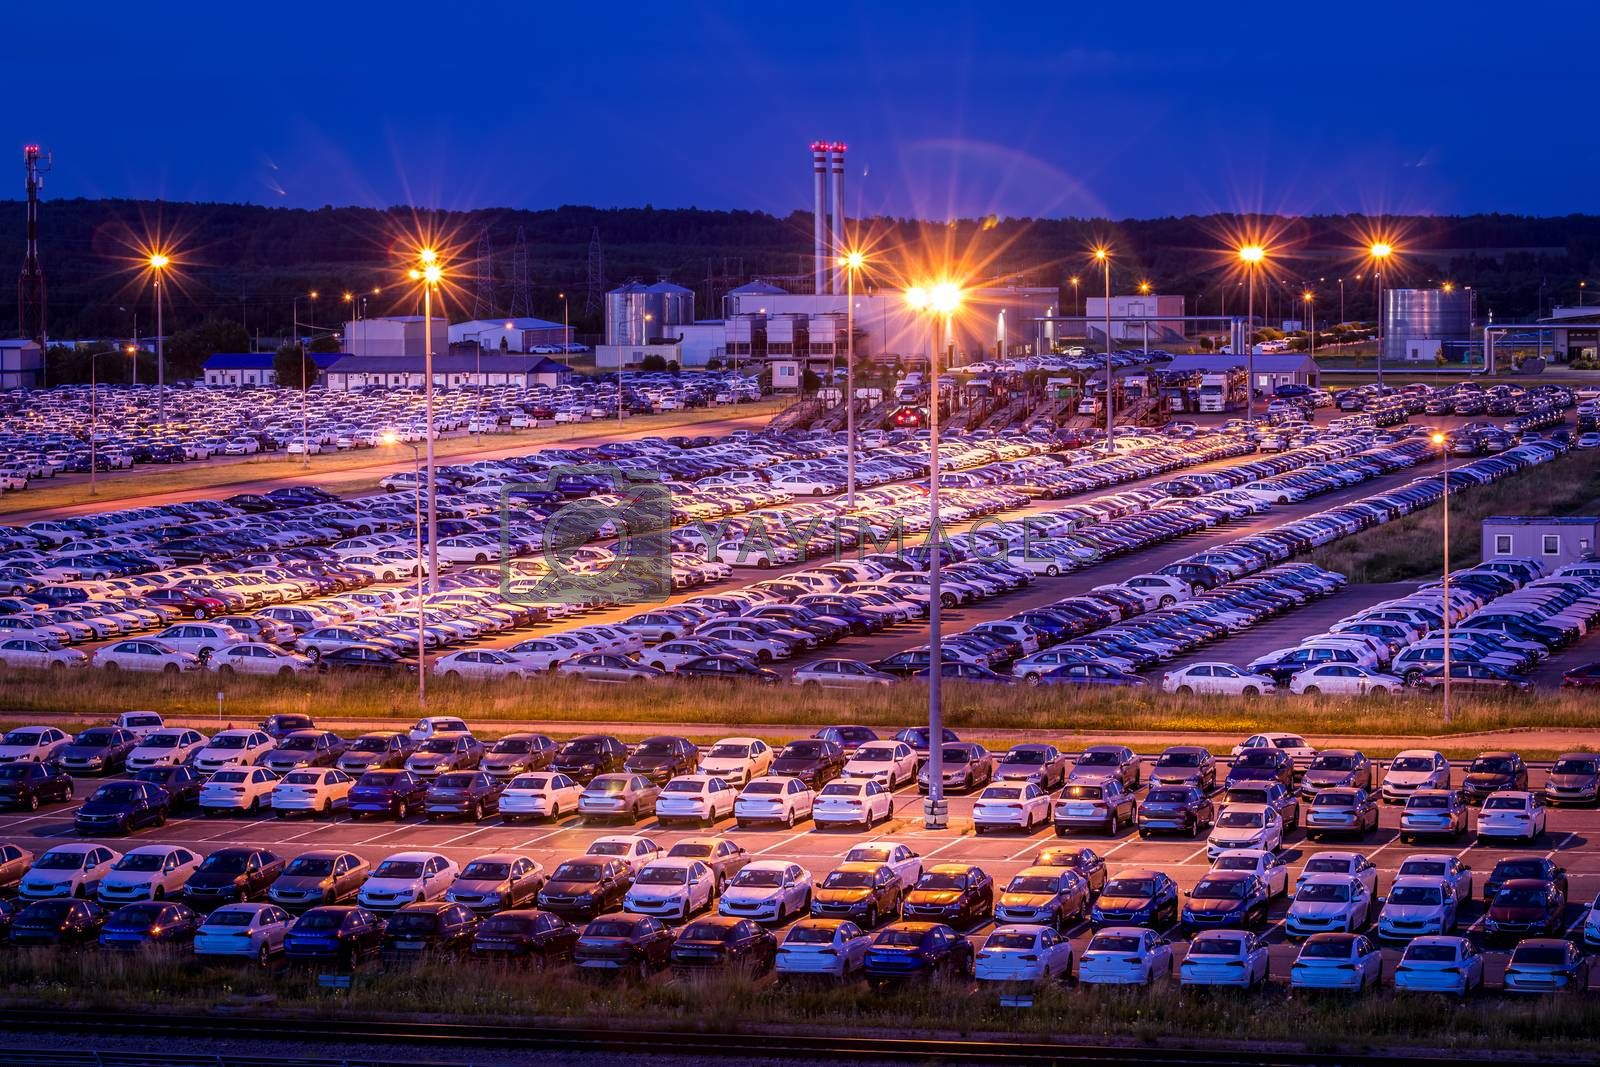 Volkswagen, Russia, Kaluga - AUGUST 26, 2020: New cars parked at distribution center of automobile factory at night with lights. Parking on the open air.